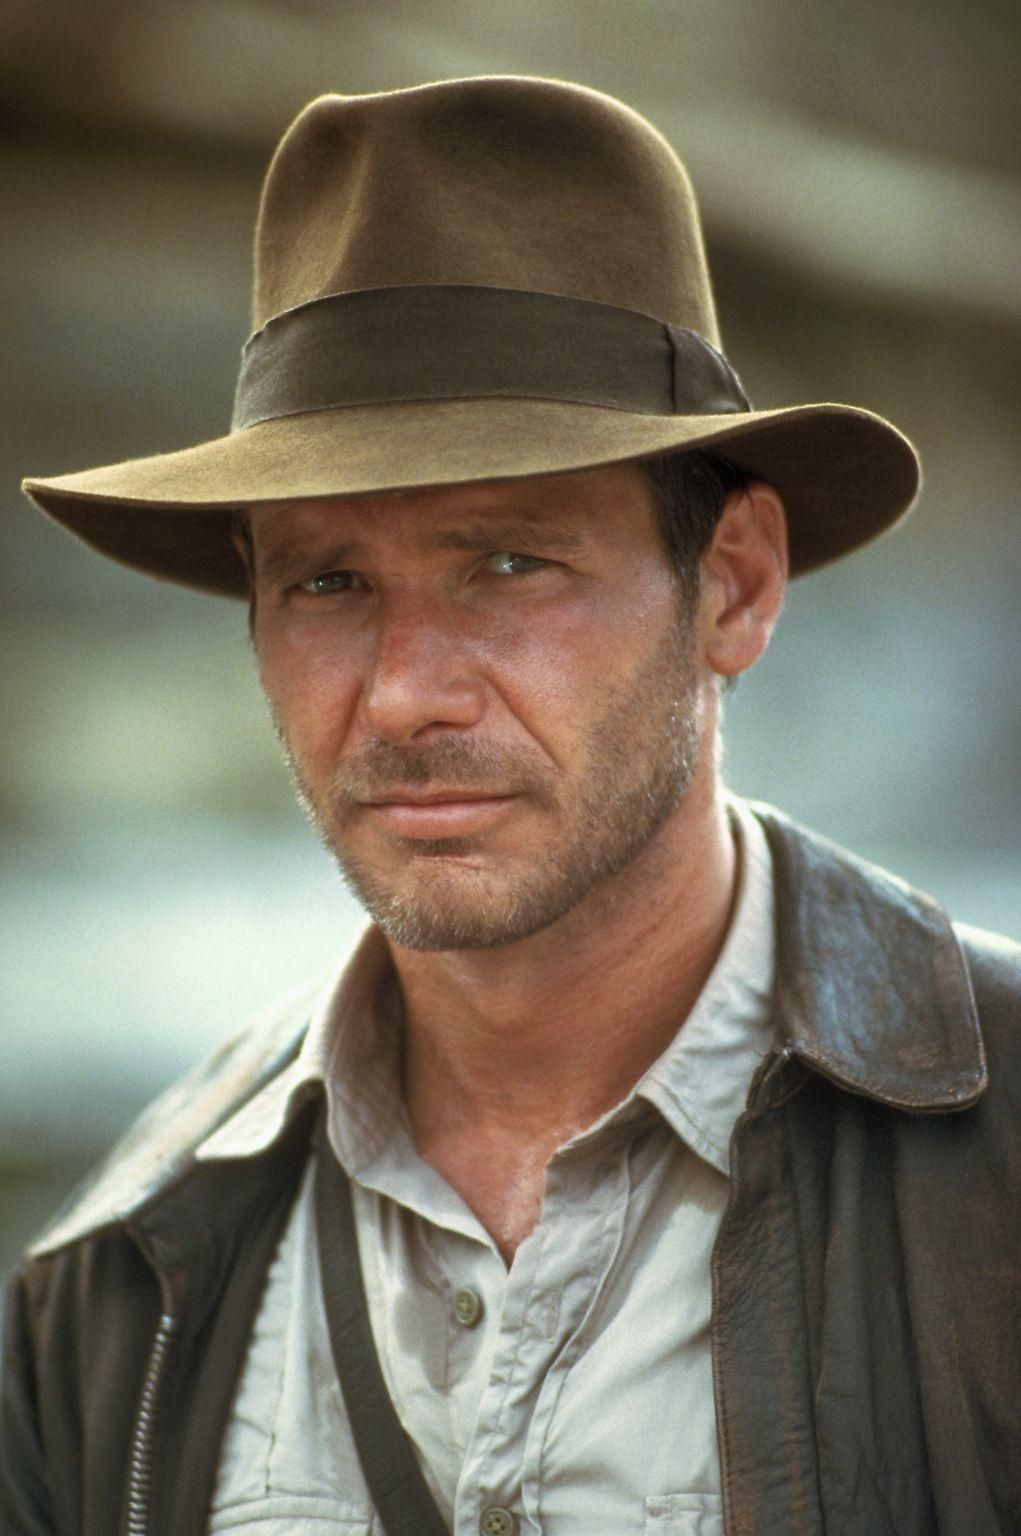 Pin By Matthew Taylor On Trees With Images Indiana Jones